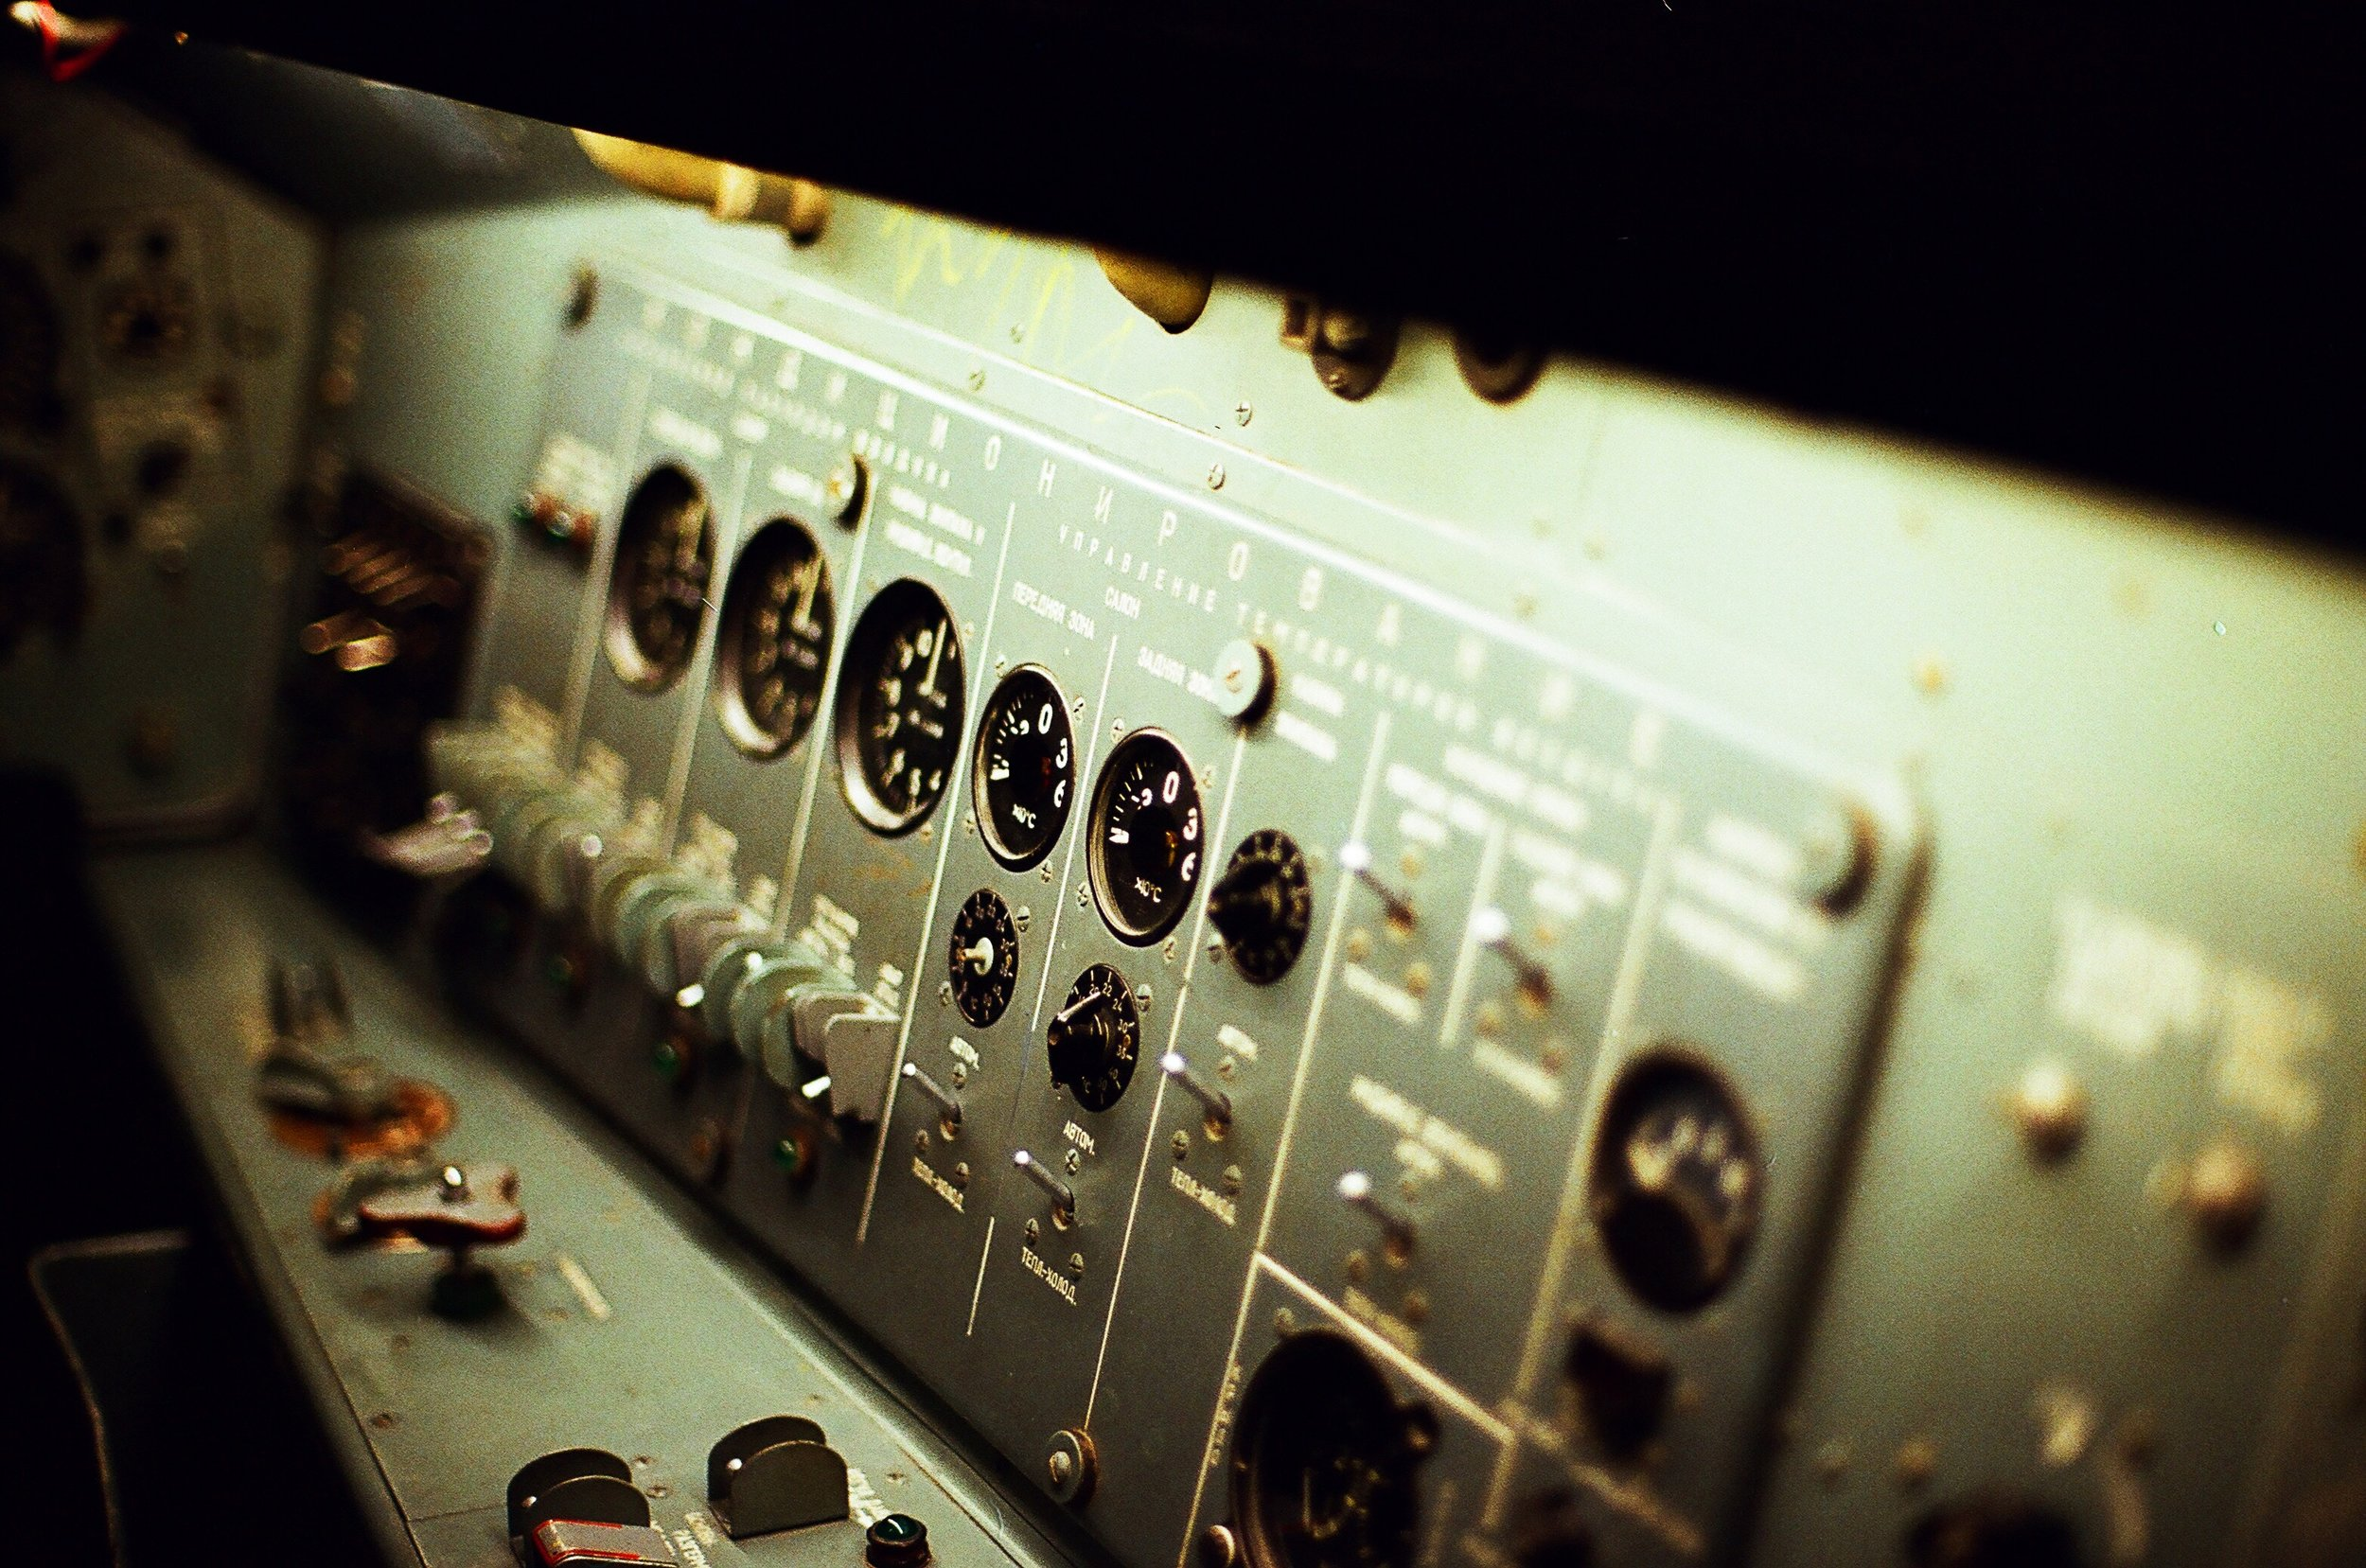 control-panel-switches-dials.jpg